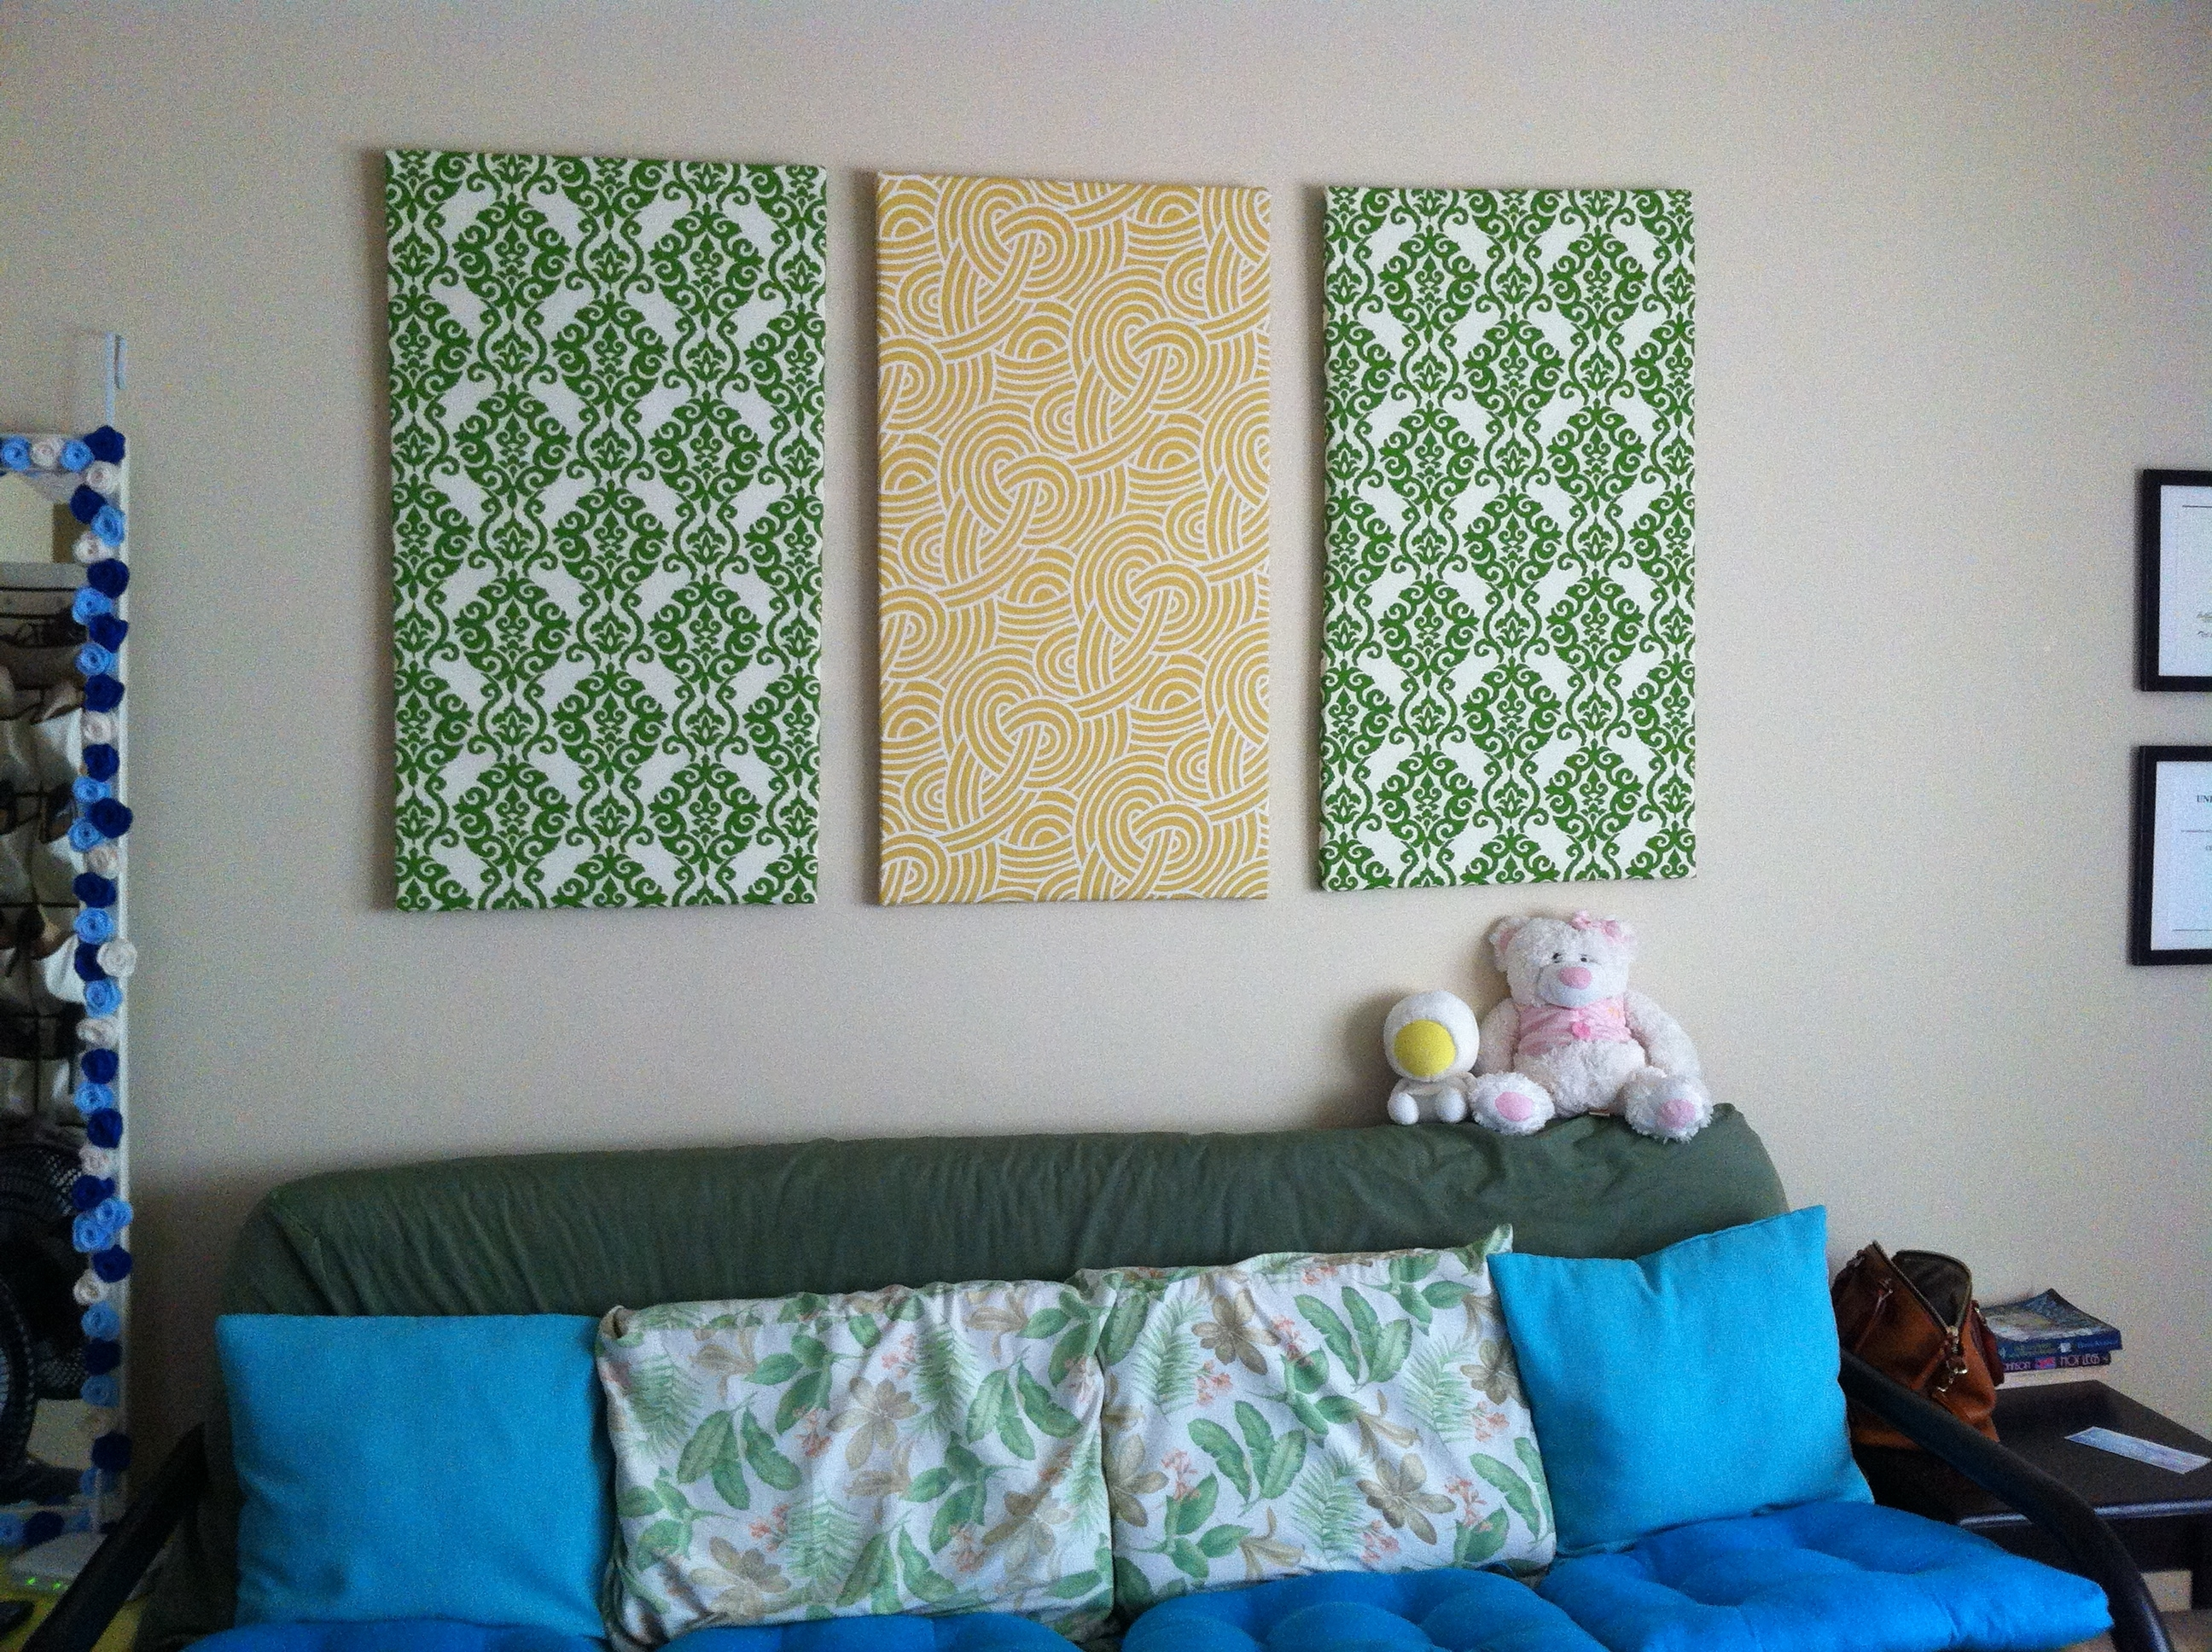 Wall Art Design: Fabric Wall Art Diy Unique Design Collection Art With Most Current Fabric For Wall Art Hangings (View 4 of 15)